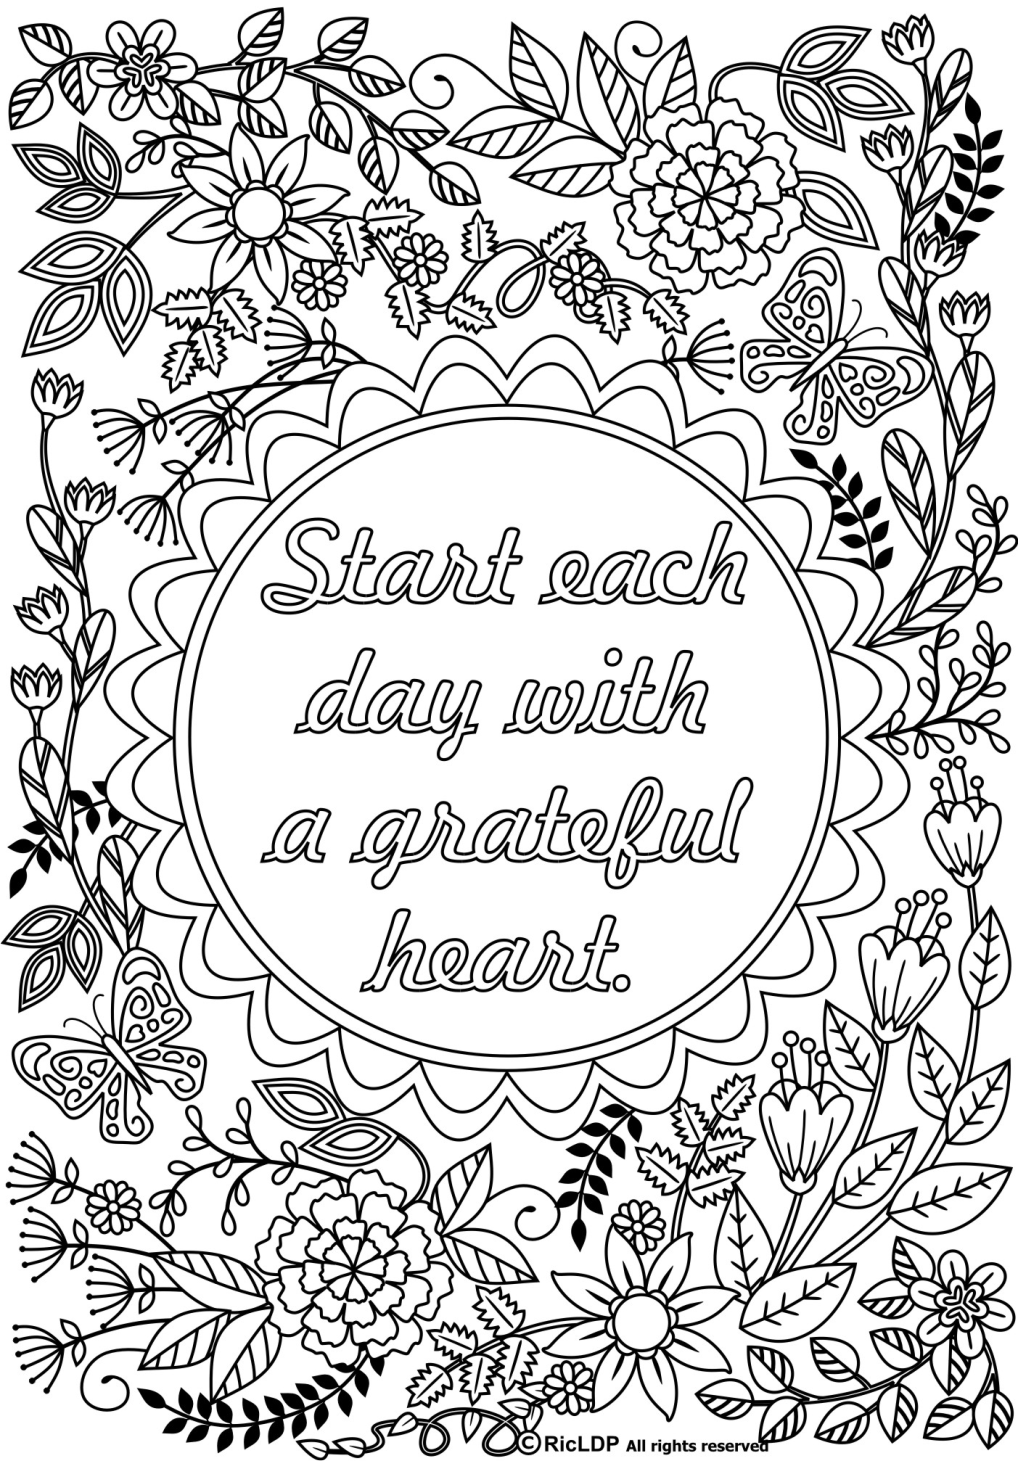 gratitude coloring pages Two Start Each Day with a Grateful Heart Coloring Pages  gratitude coloring pages